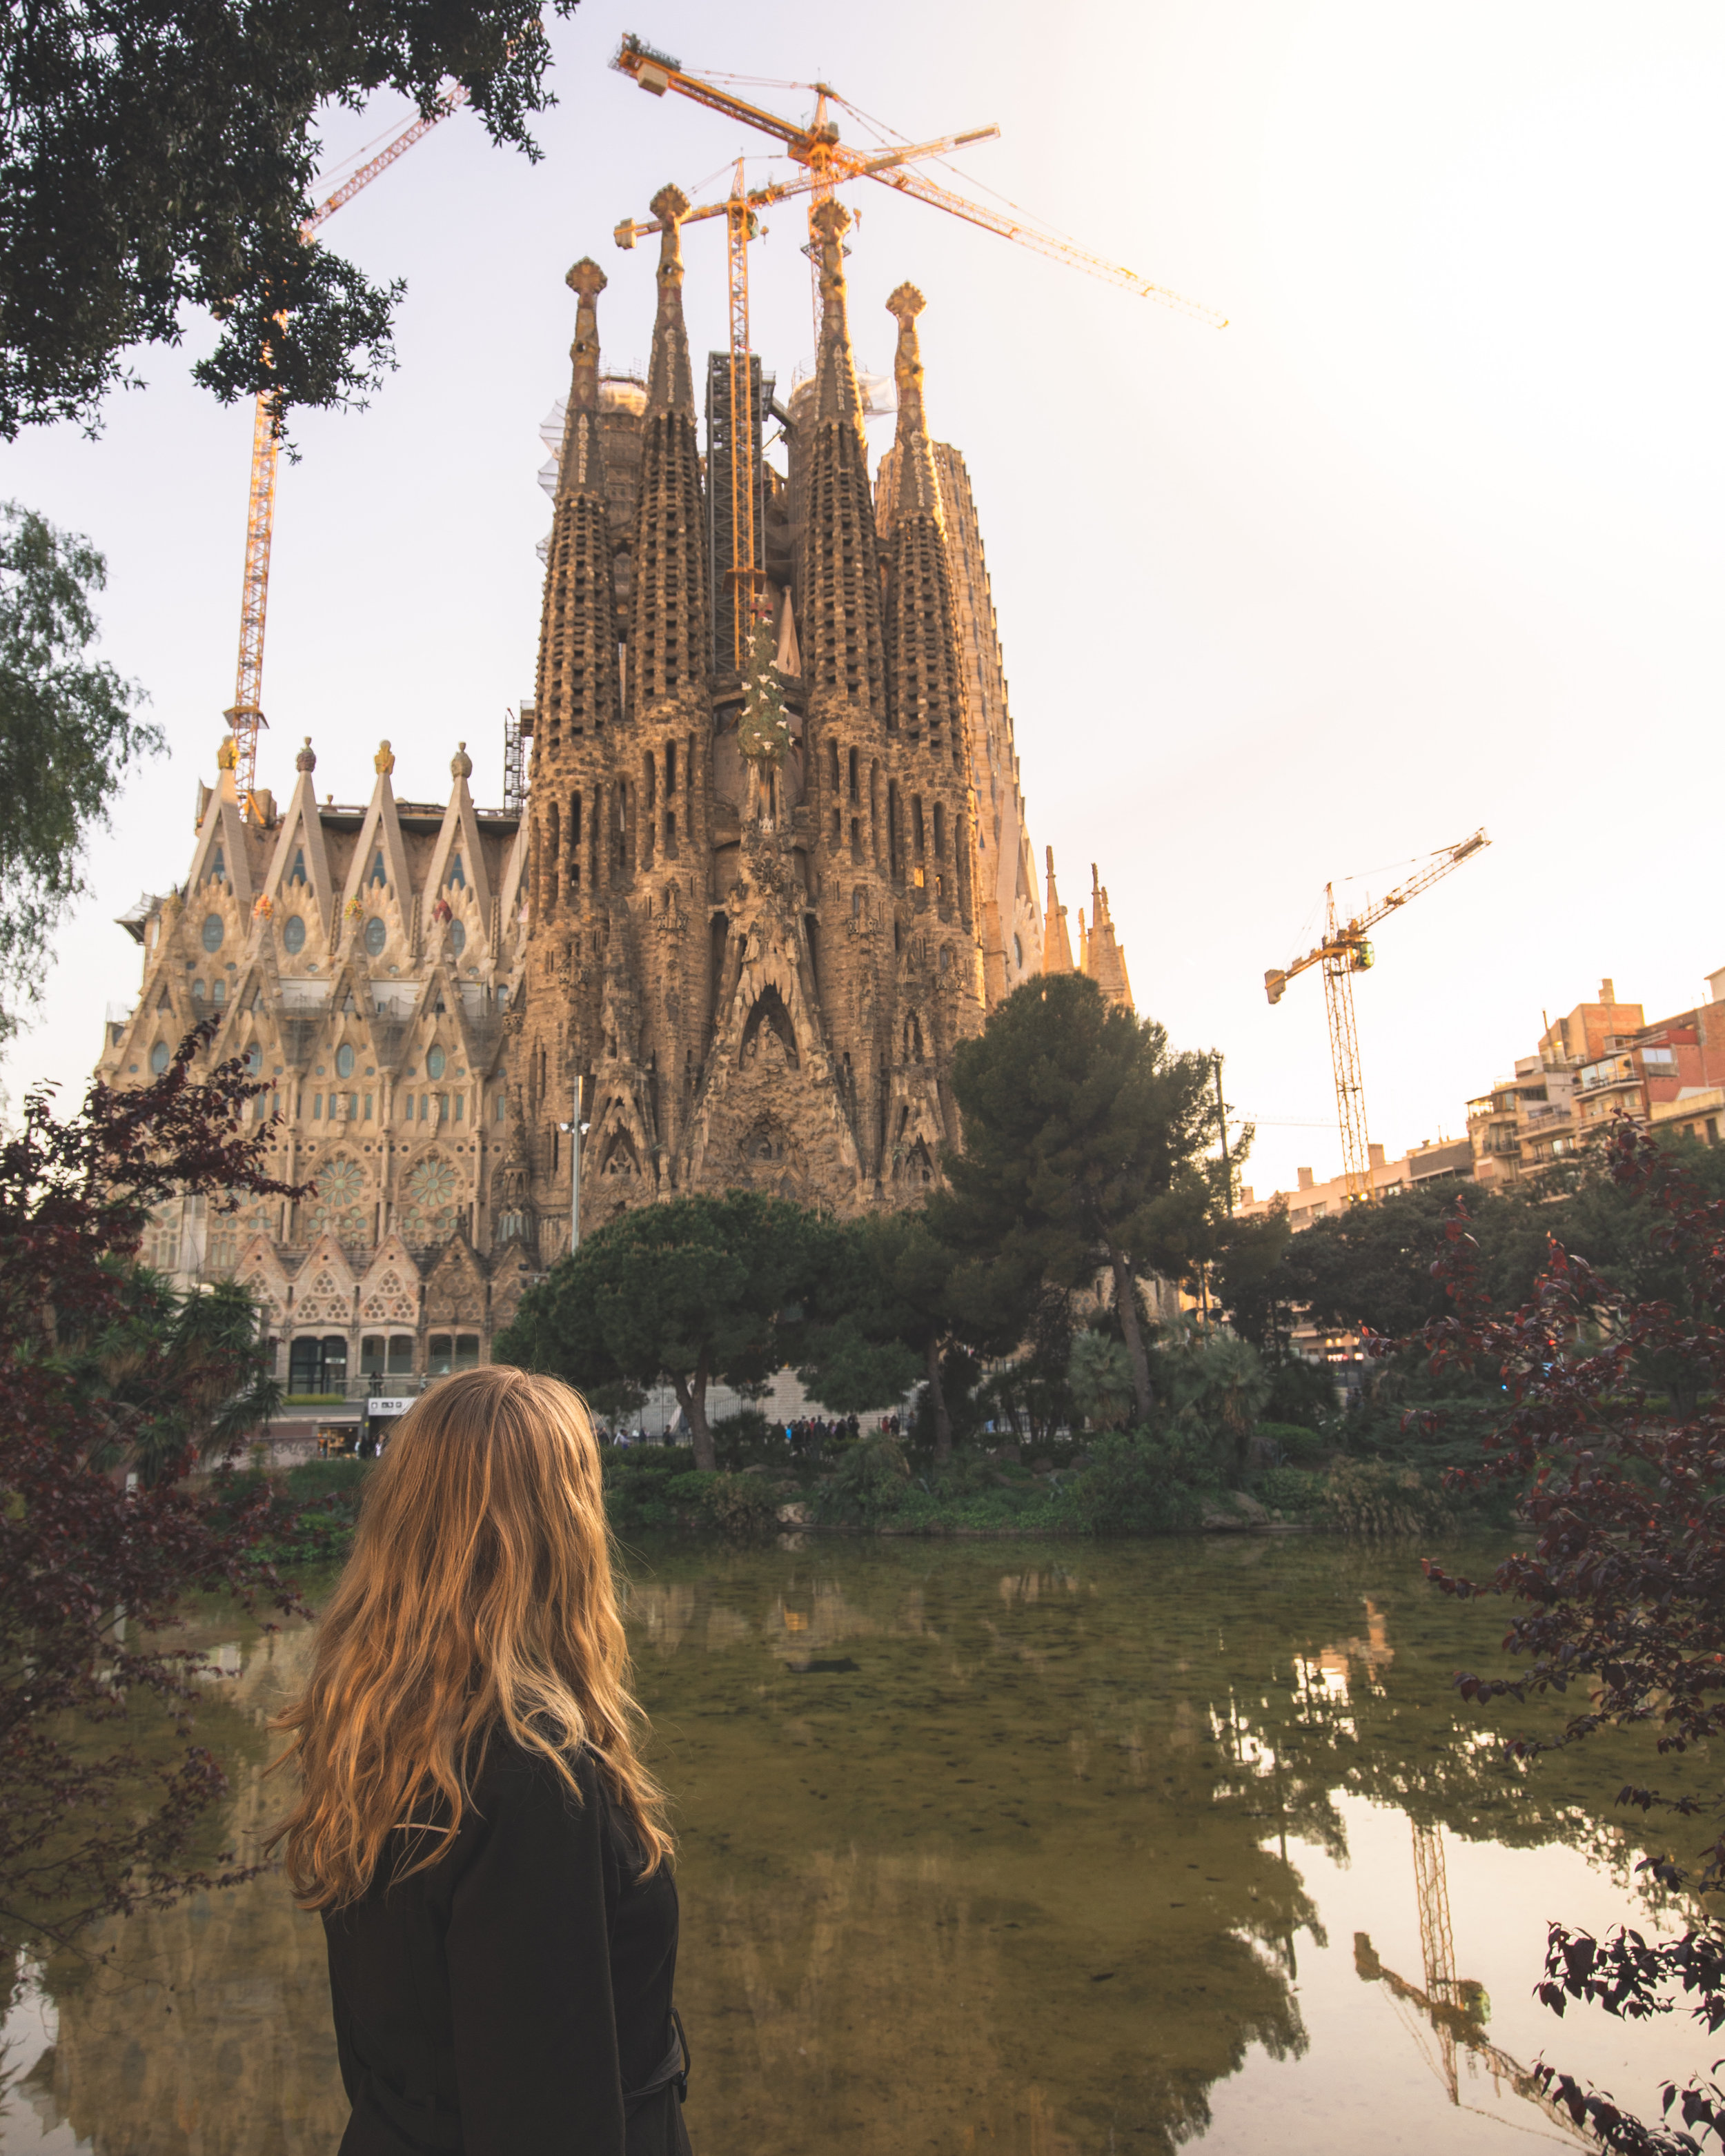 Instagrammable places in Barcelona